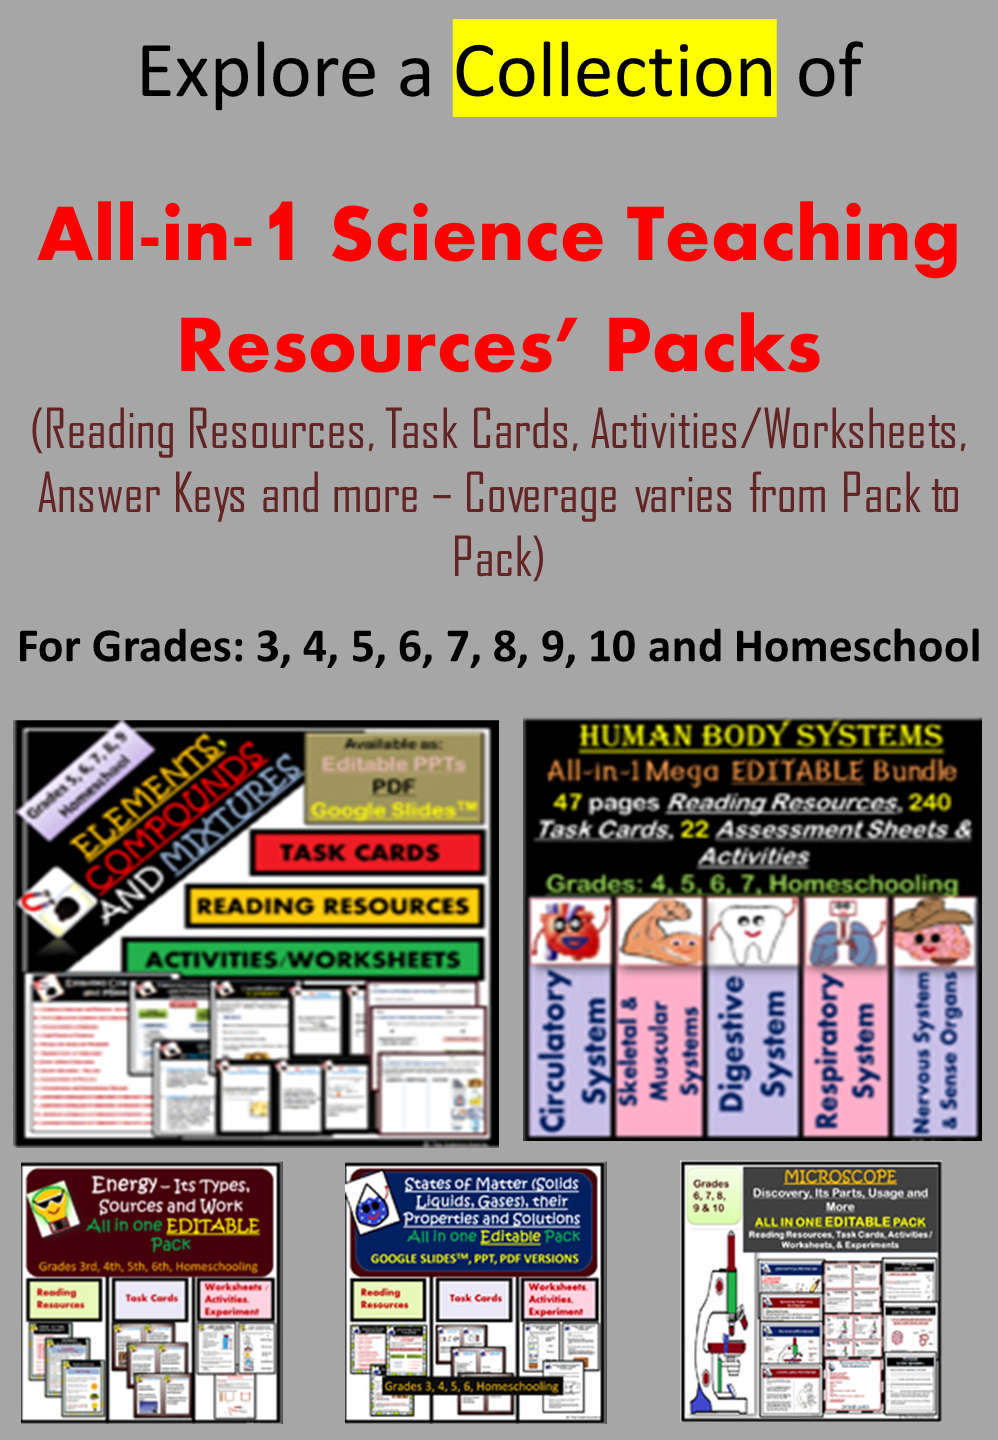 All In 1 Science Teaching Resources Packs For Grades 3 To 10 And Homeschooling In 2020 Science Teaching Resources Science Reading Science [ 1440 x 998 Pixel ]